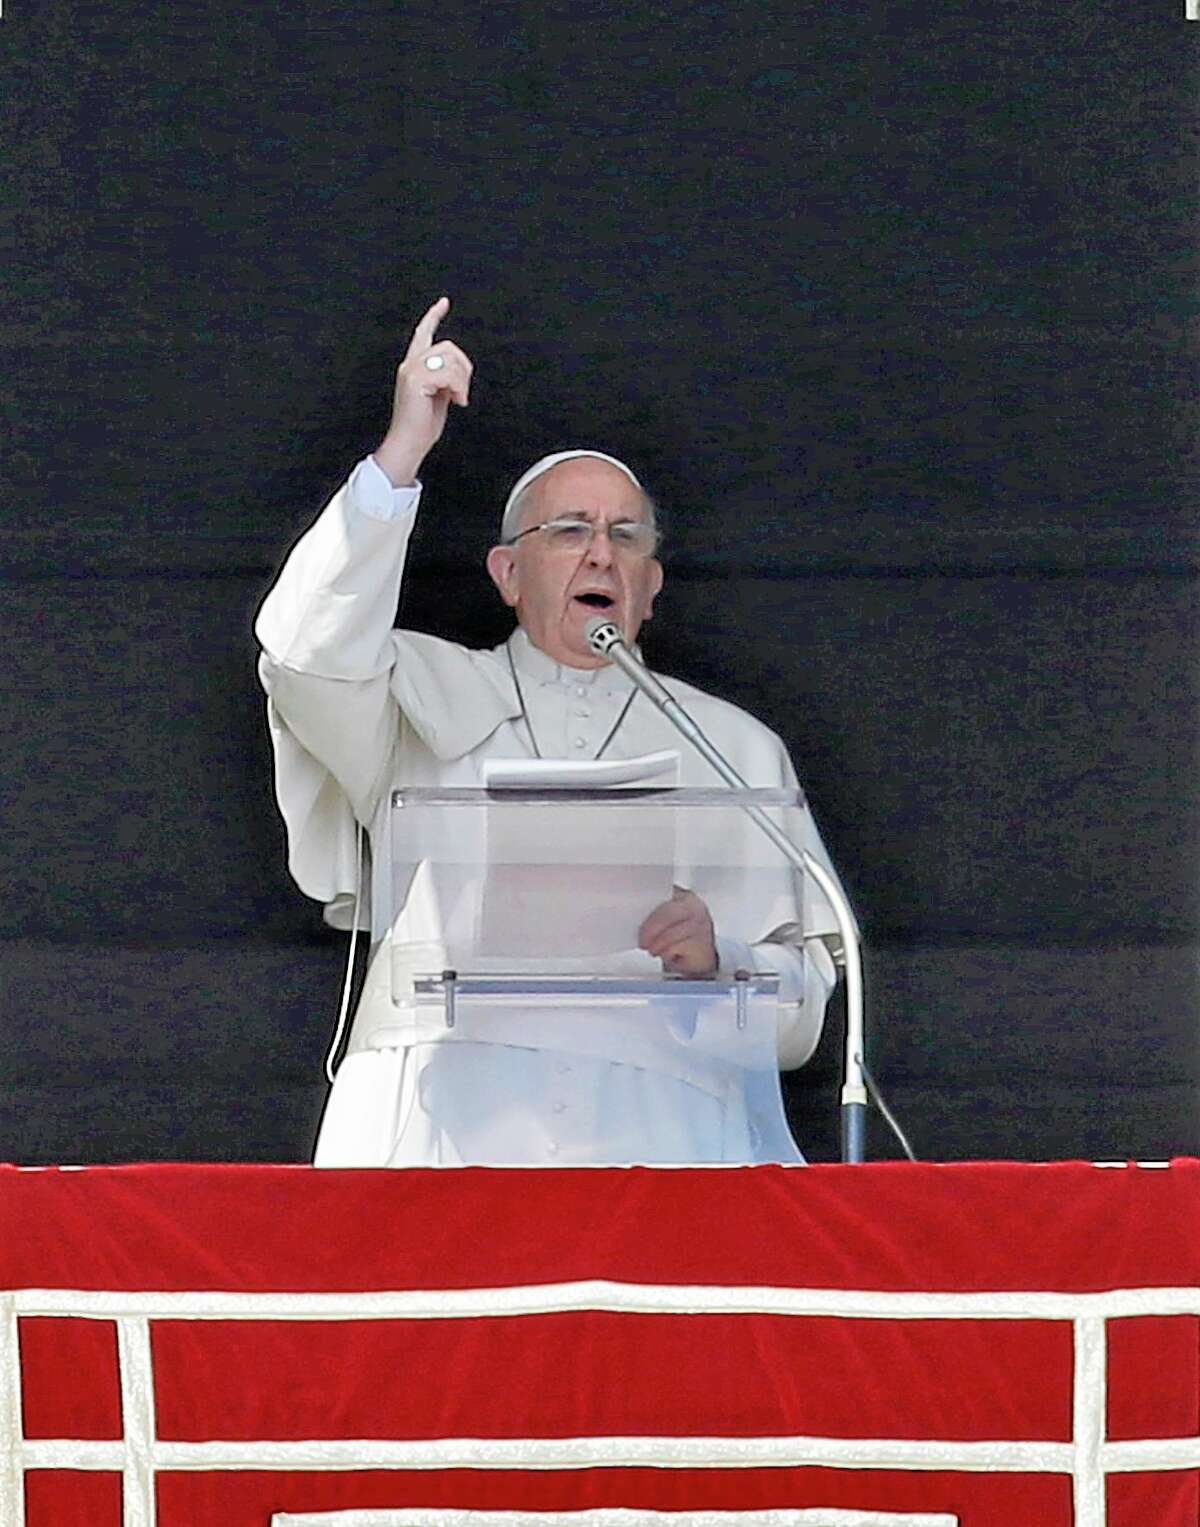 Pope Francis delivers his message on the occasion of the Angelus noon prayer in St. Peter's Square, at the Vatican, Sunday, March 16, 2014. (AP Photo/Gregorio Borgia)